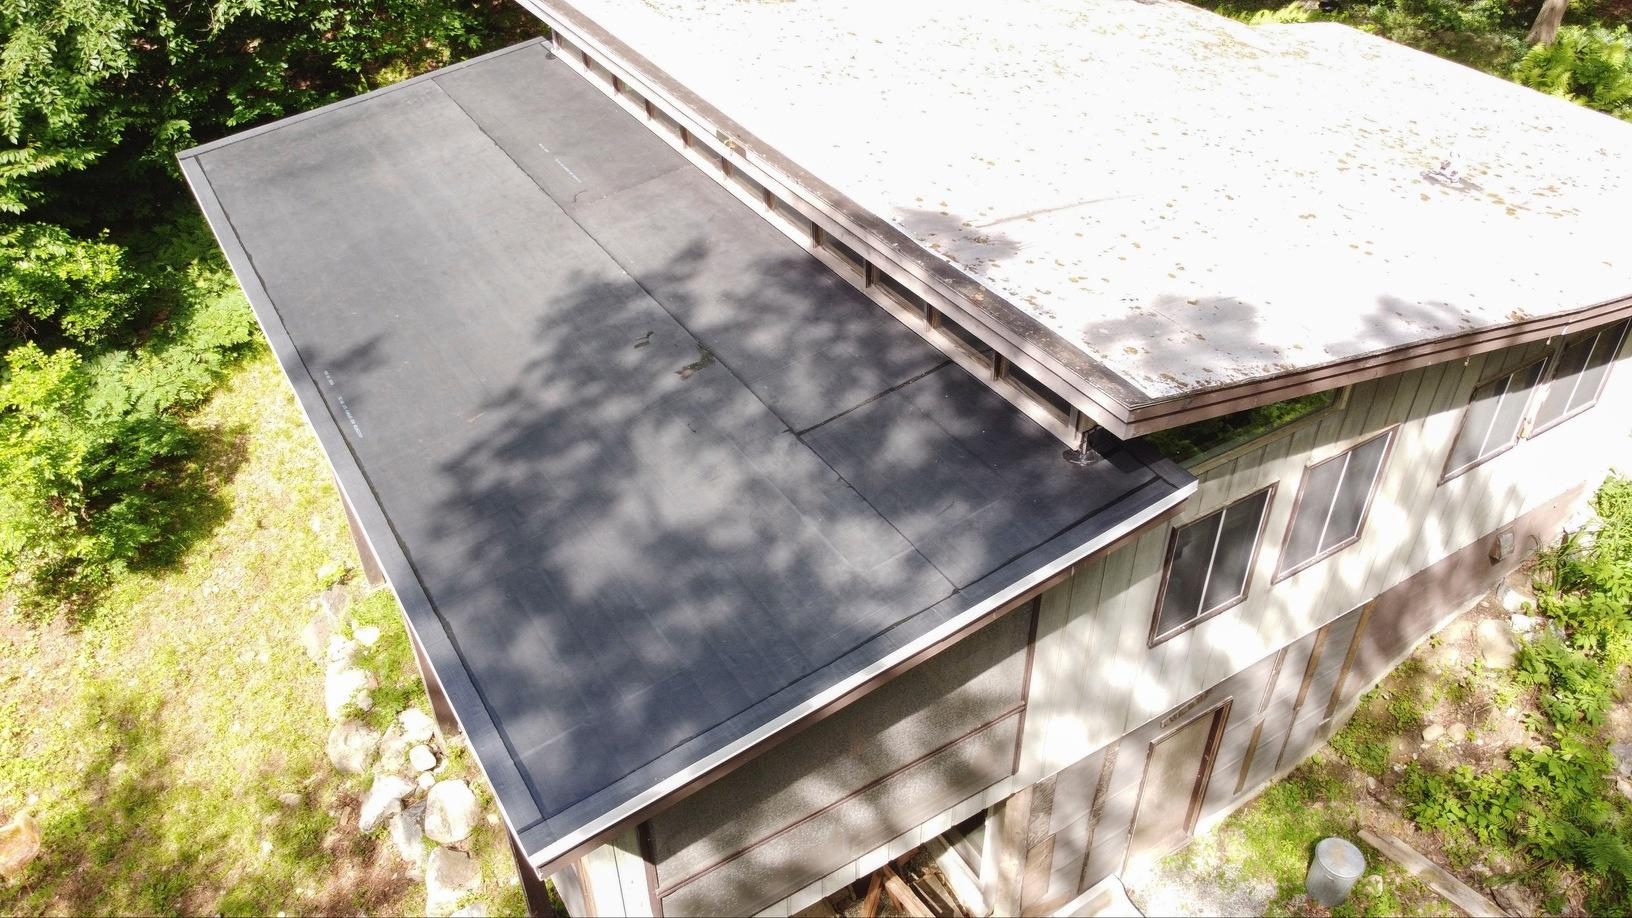 Klaus Flat Roof Replacement in Otis, MA - After Photo